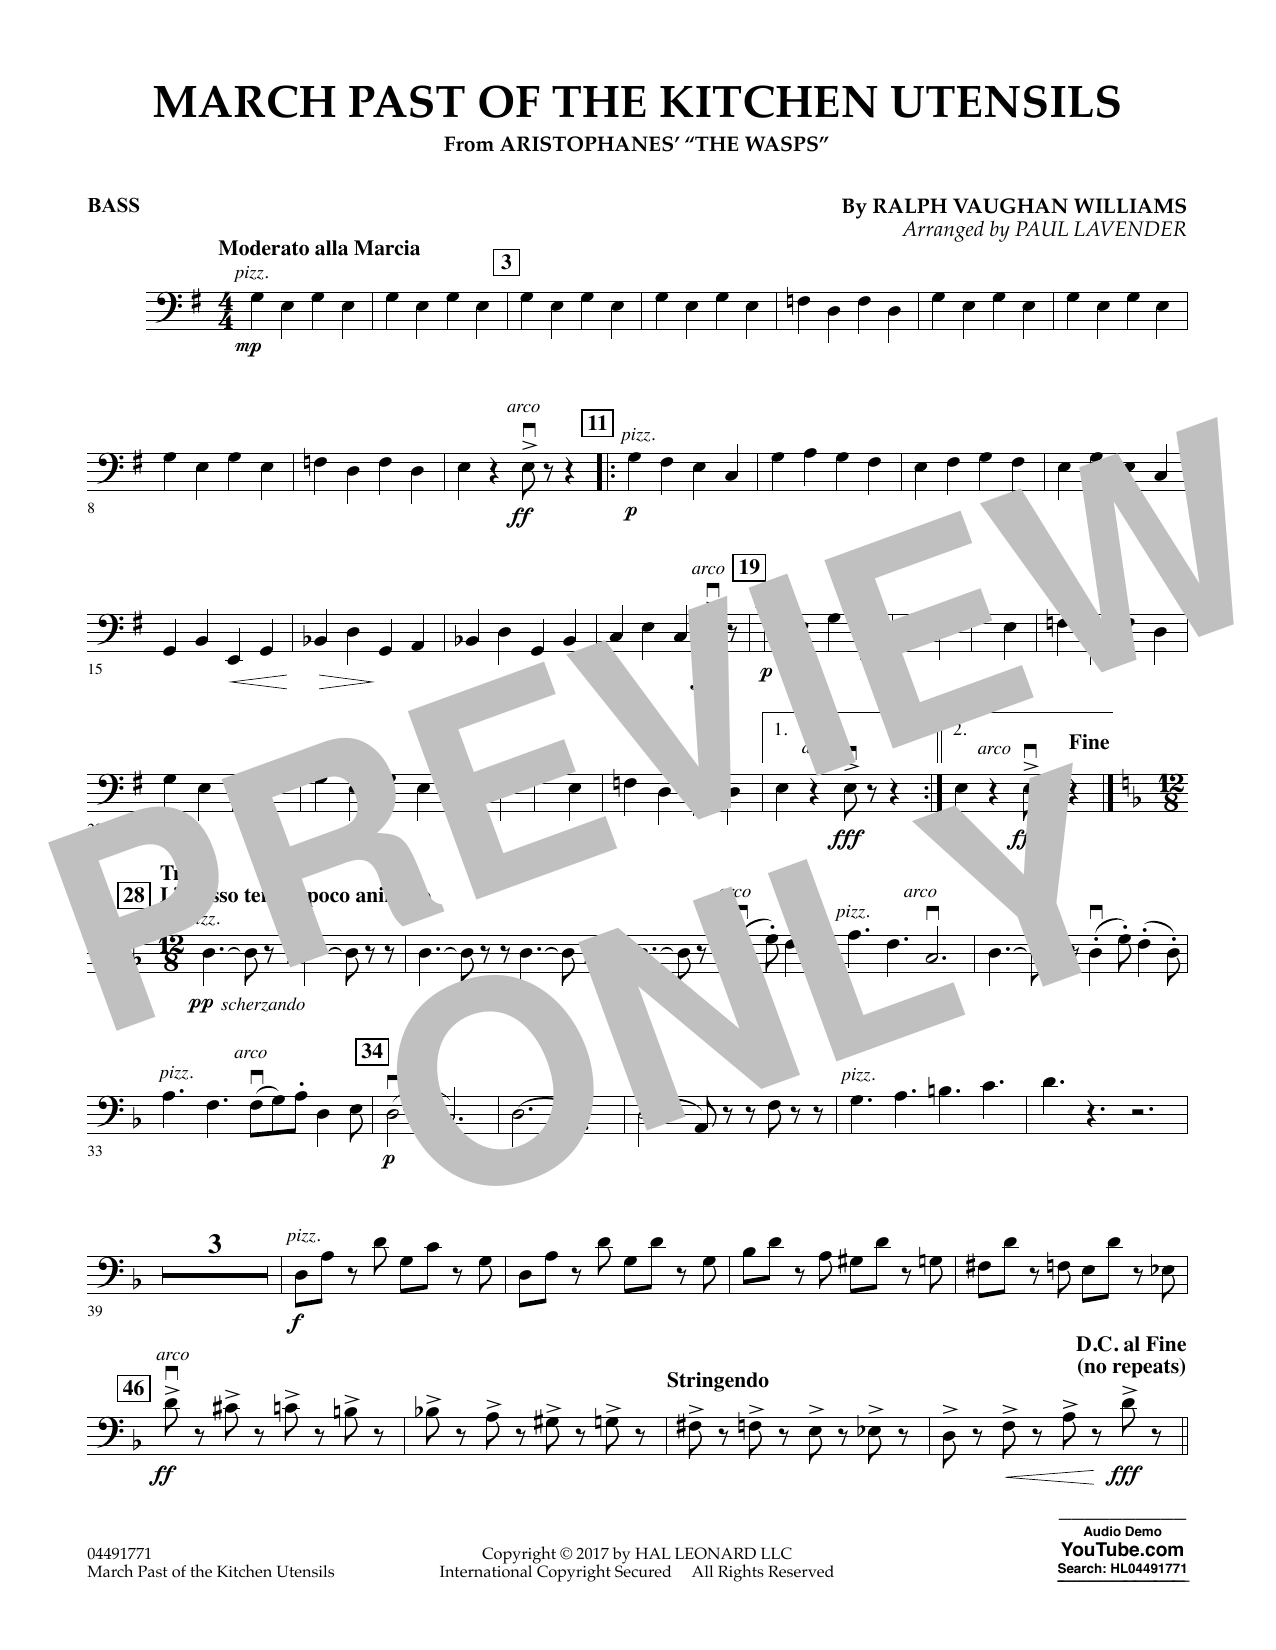 Paul Lavender March Past of the Kitchen Utensils (from The Wasps) - Bass sheet music notes and chords. Download Printable PDF.